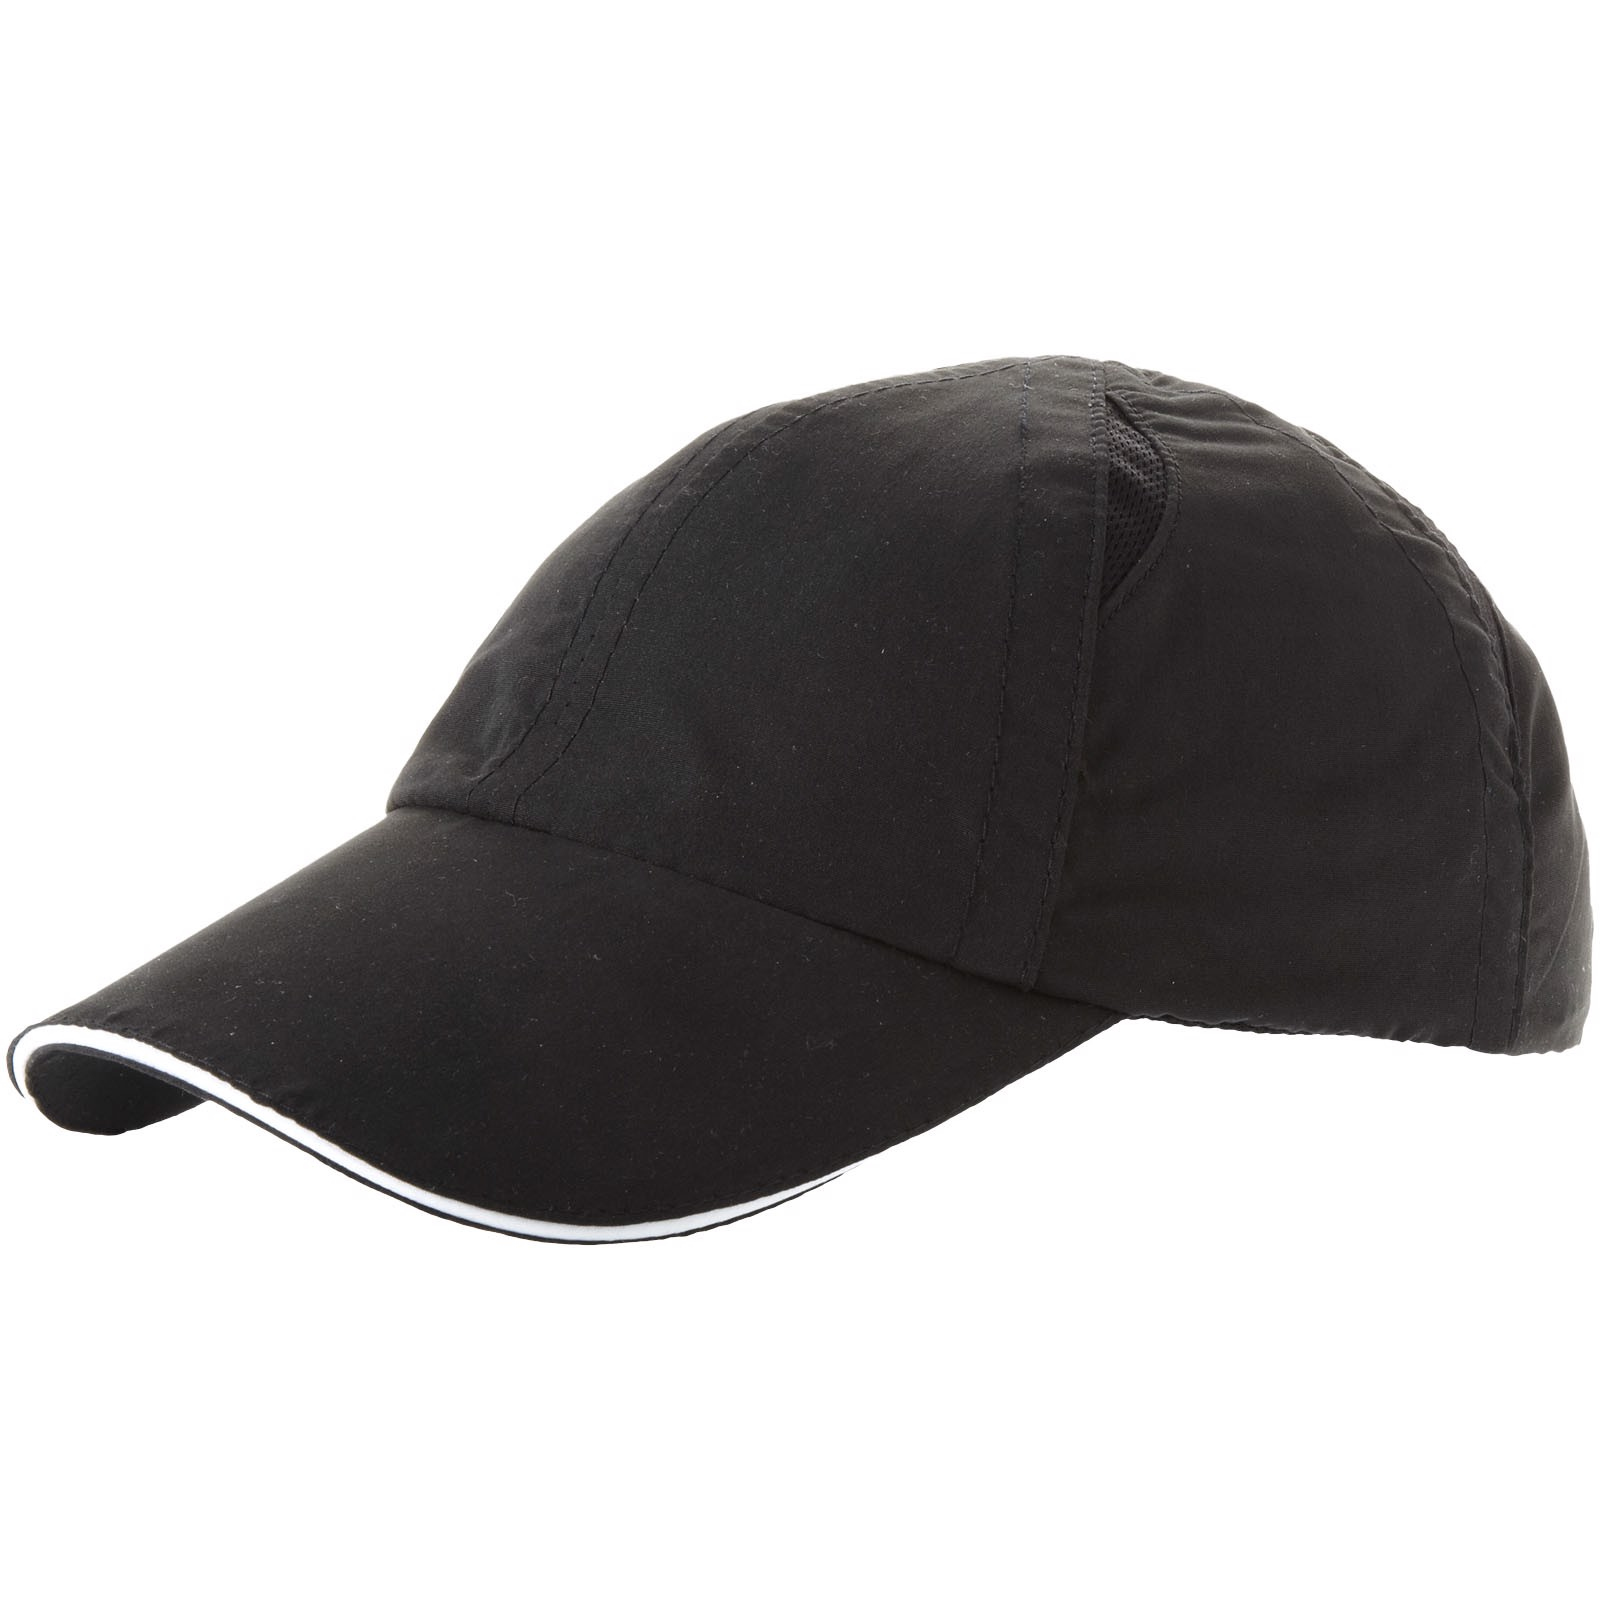 Alley 6 panel cool fit sandwich cap - Solid black